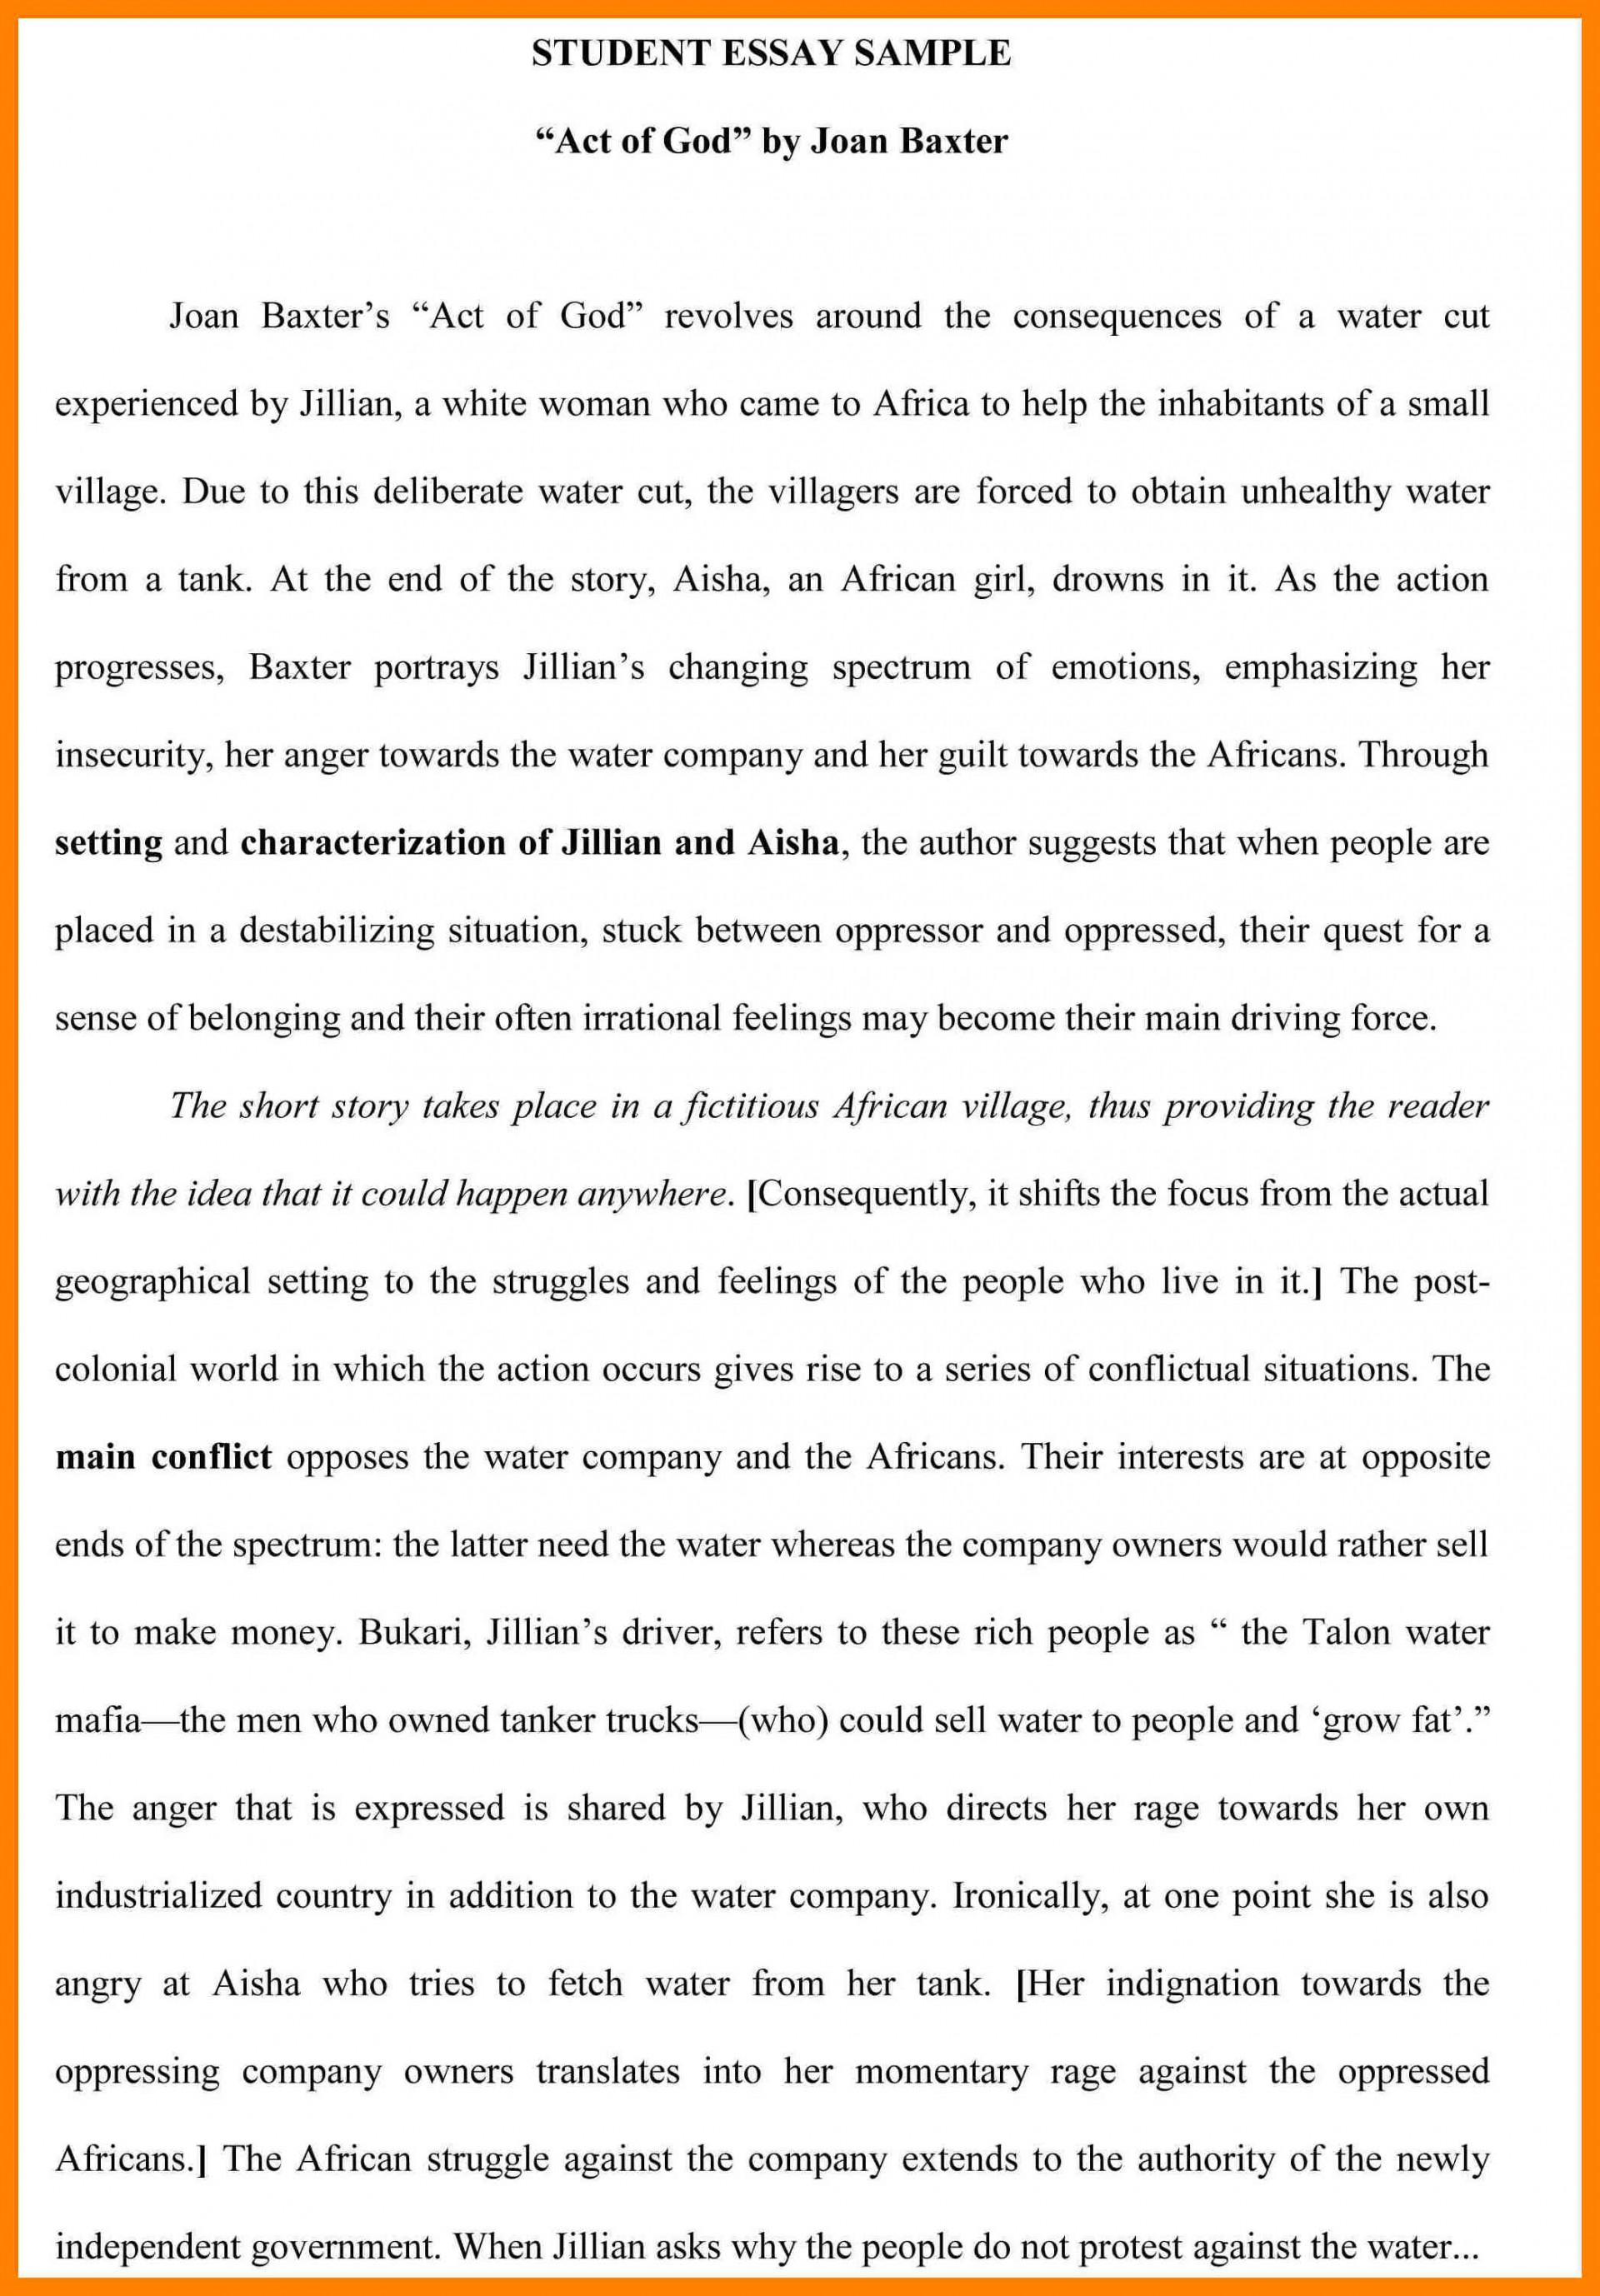 002 Sample Math Test Act Elmifermetures Com Ideas Collection Essay Awesome Of Livesto Essays Pdf New Topics Example Fearsome Examples Good Score Average 1920